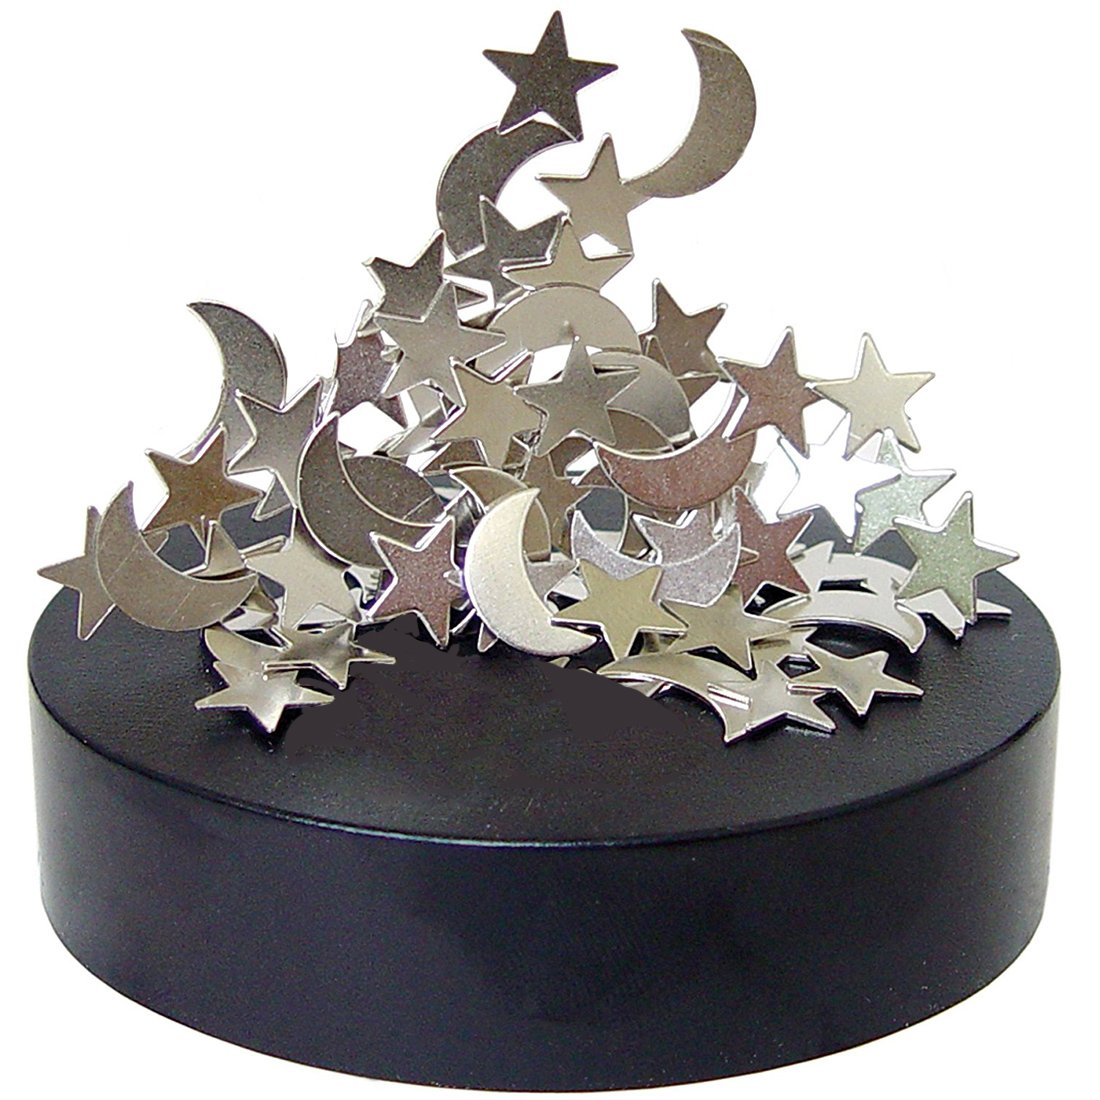 AblueA Magnetic Sculpture Desk Toy Coffee Table Piece As Office Gift Stocking Stuffer (Oval Base - Moons&Stars)